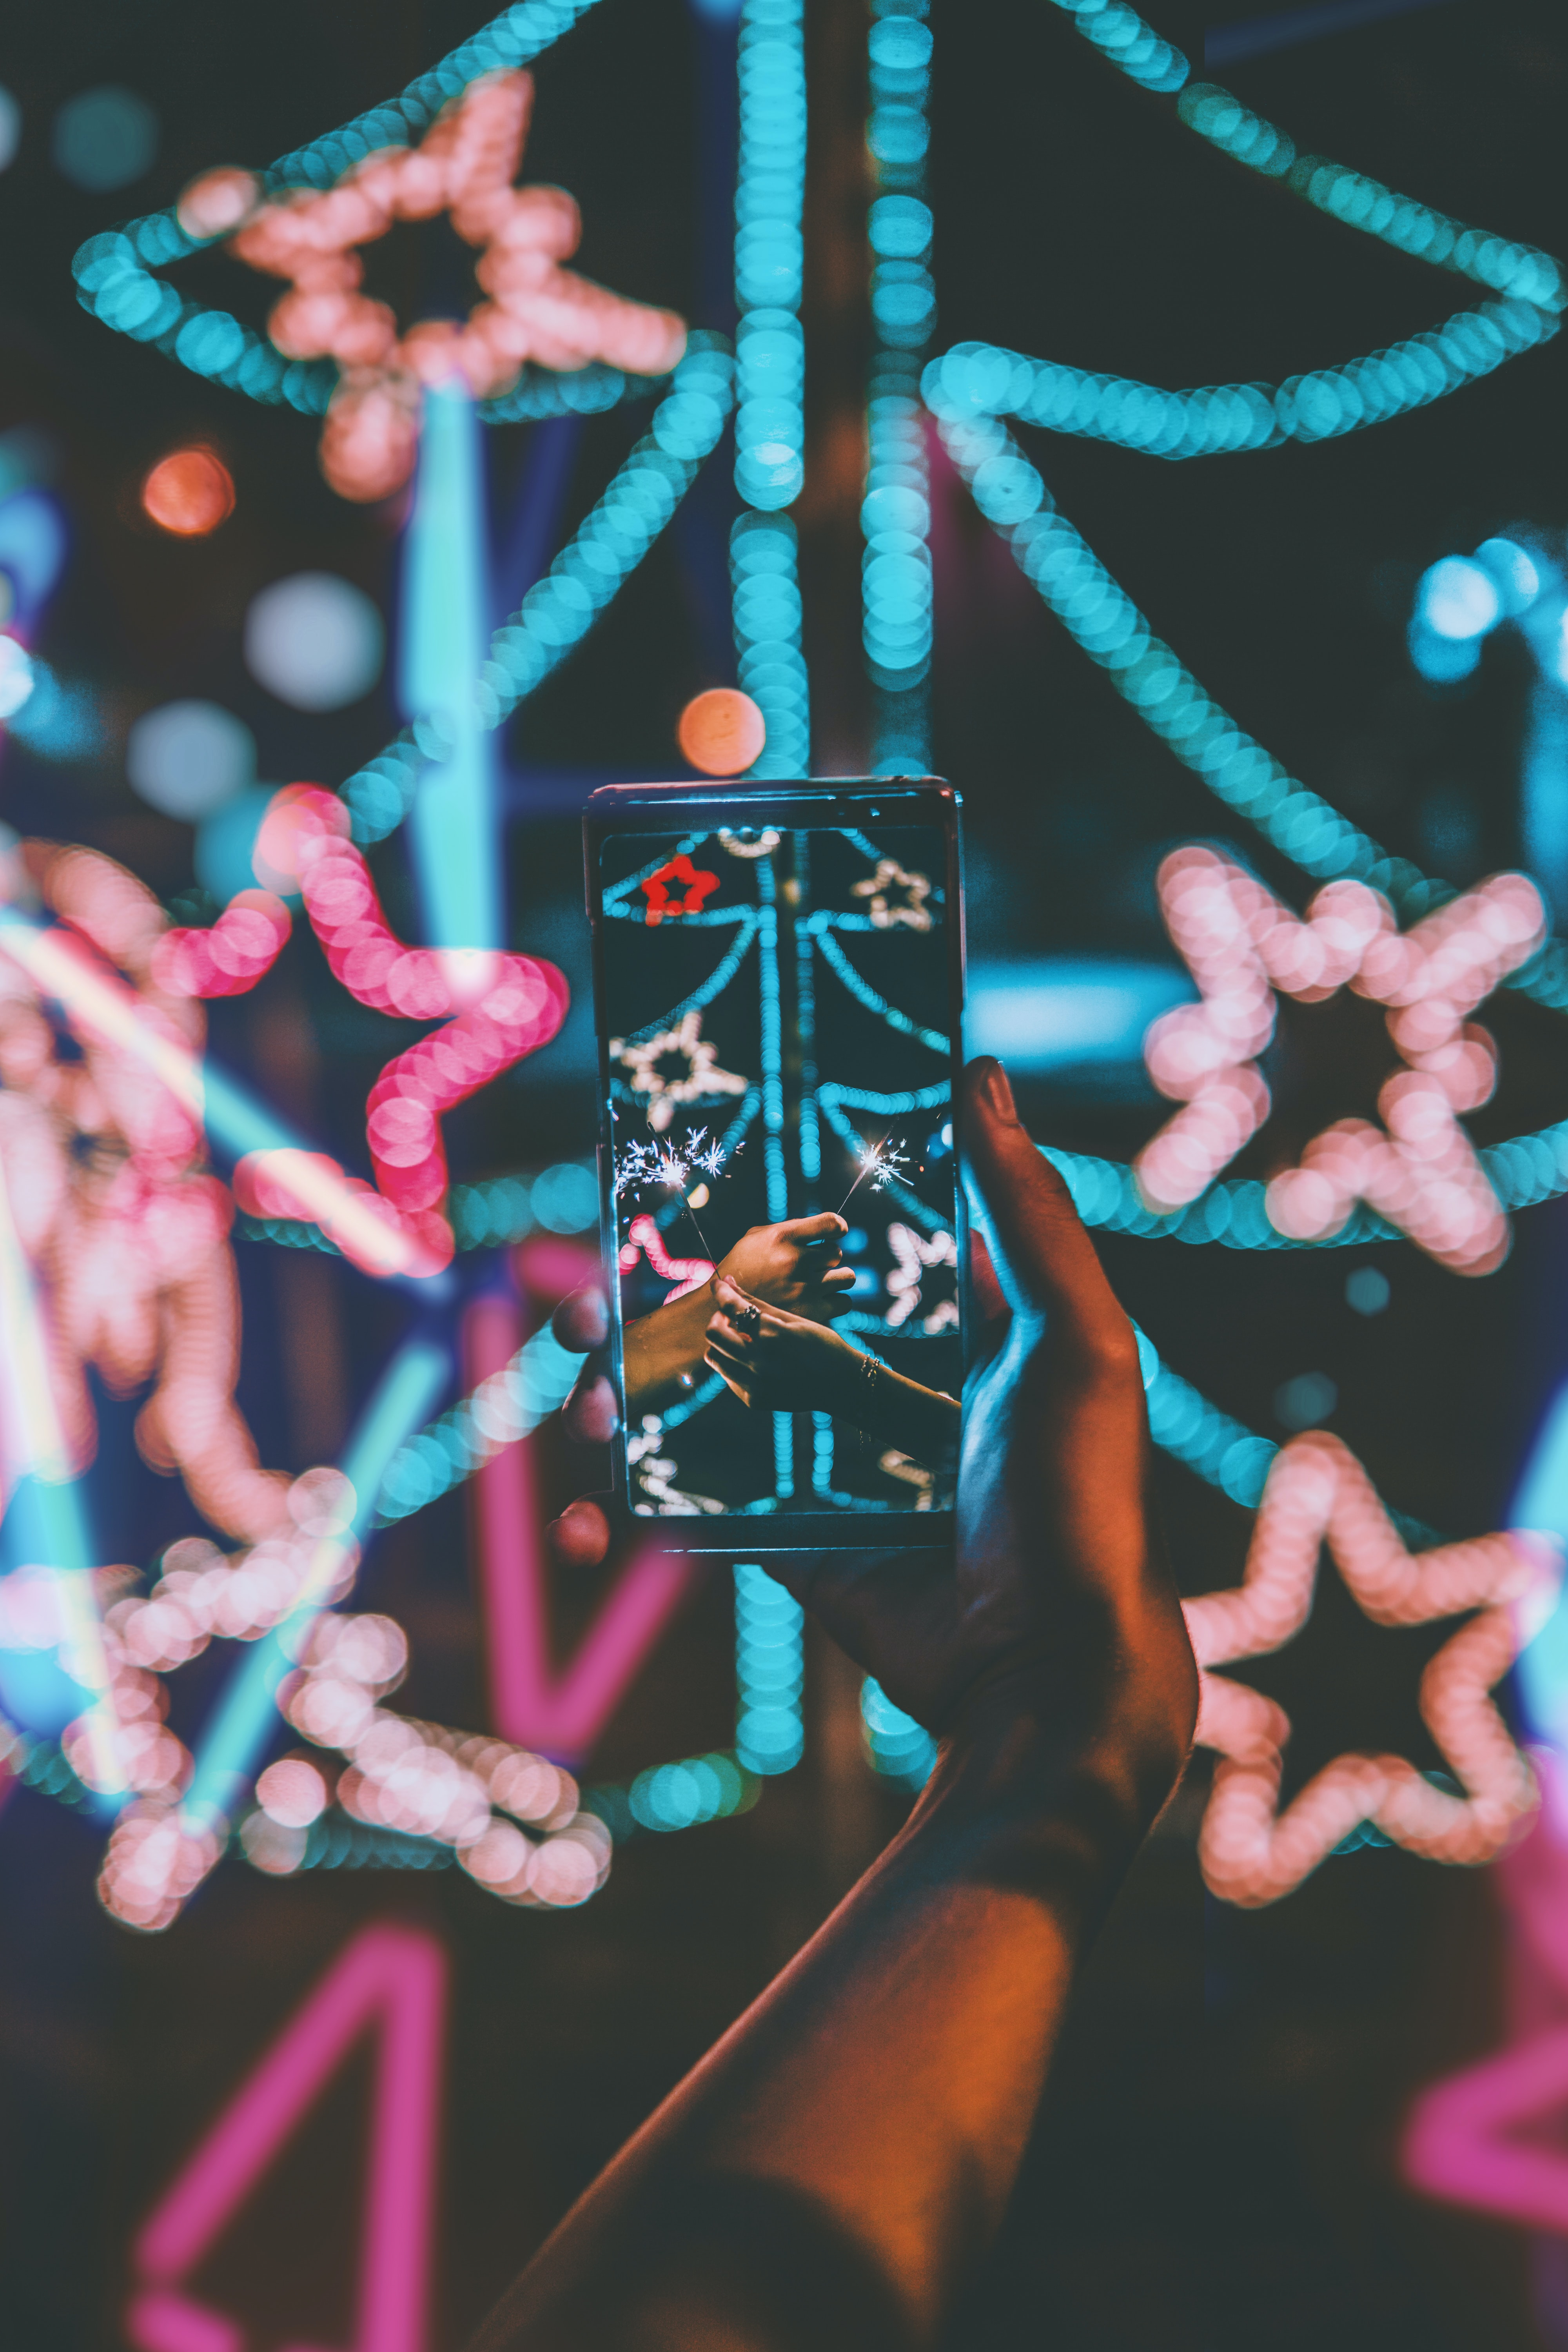 bokeh photography of person holding Android smartphone